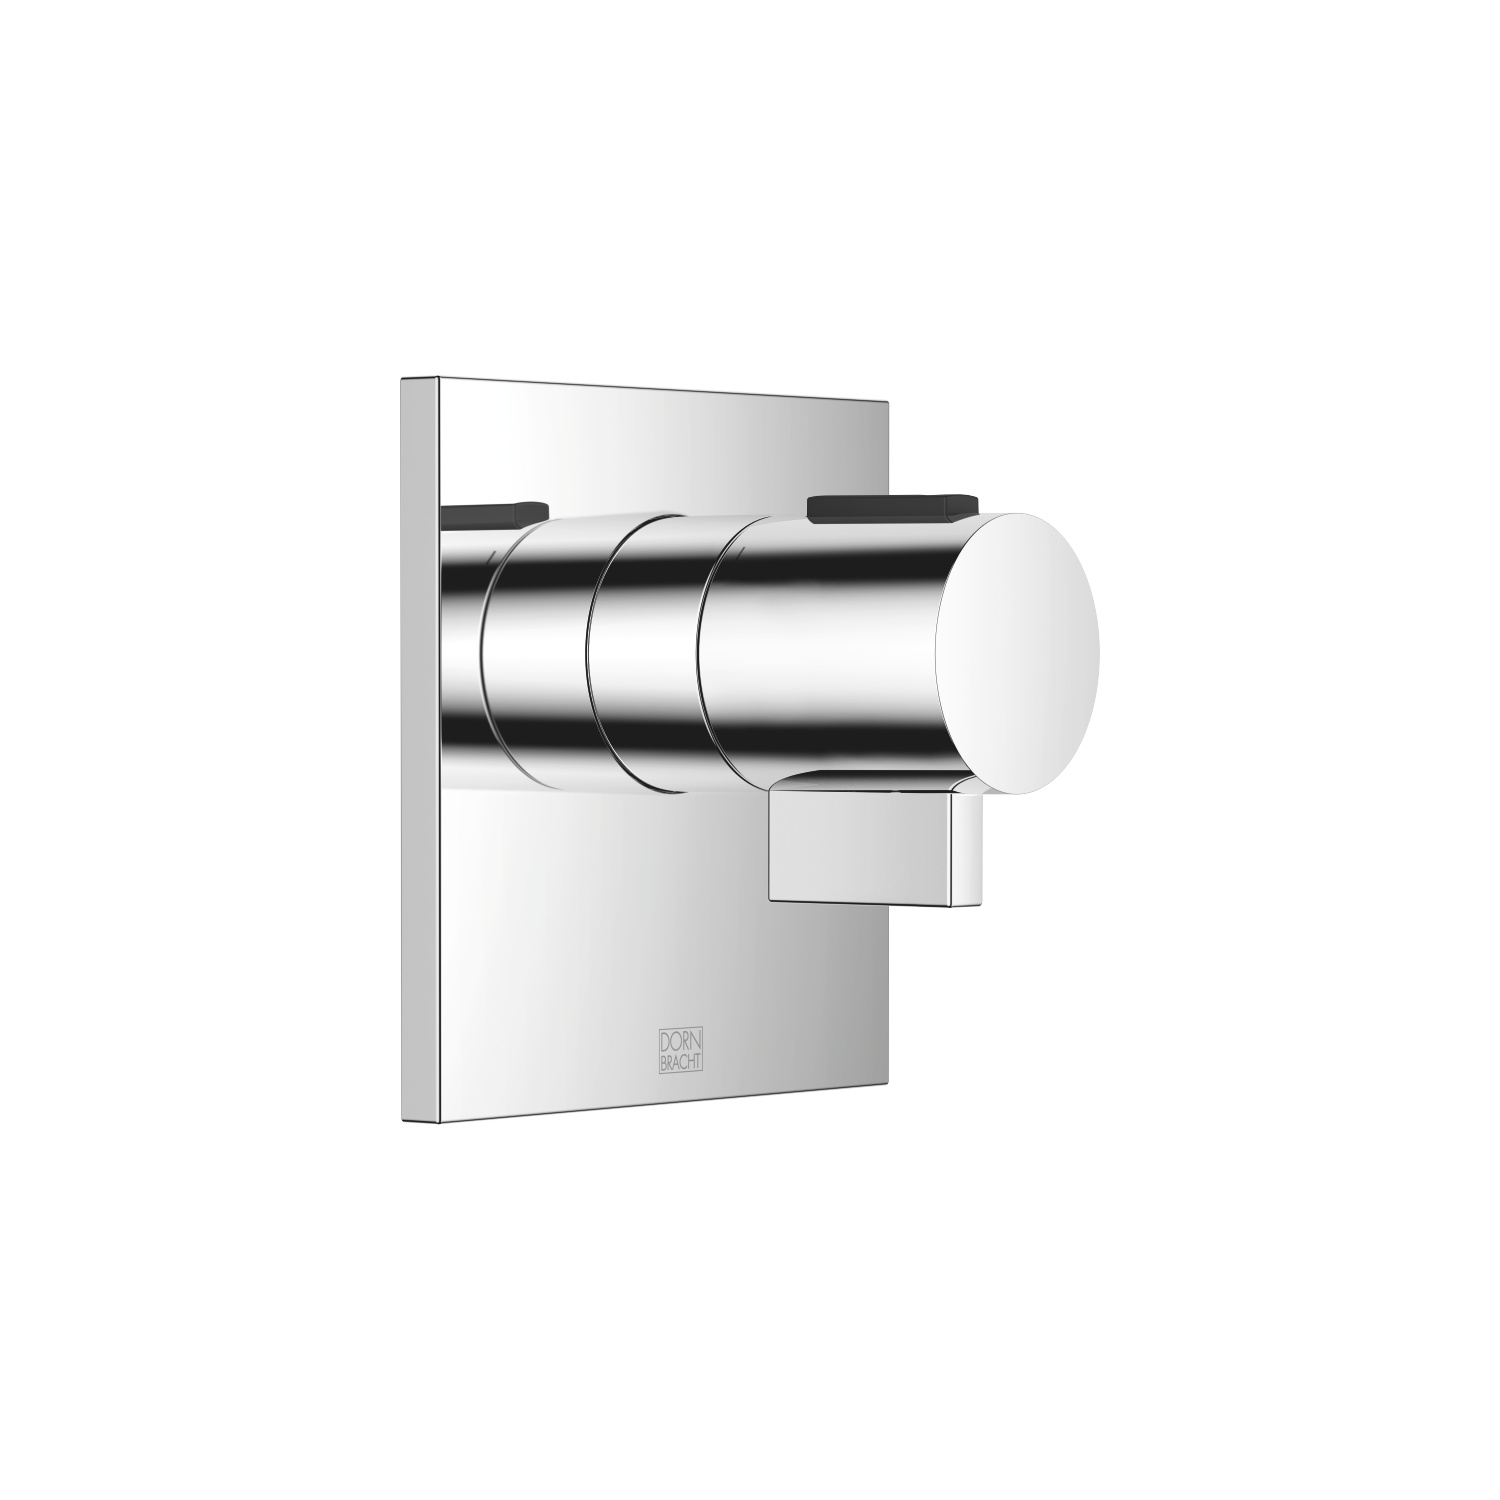 "xTOOL Concealed thermostat without volume control 3/4"" - brushed Durabrass - 36 503 985-28"